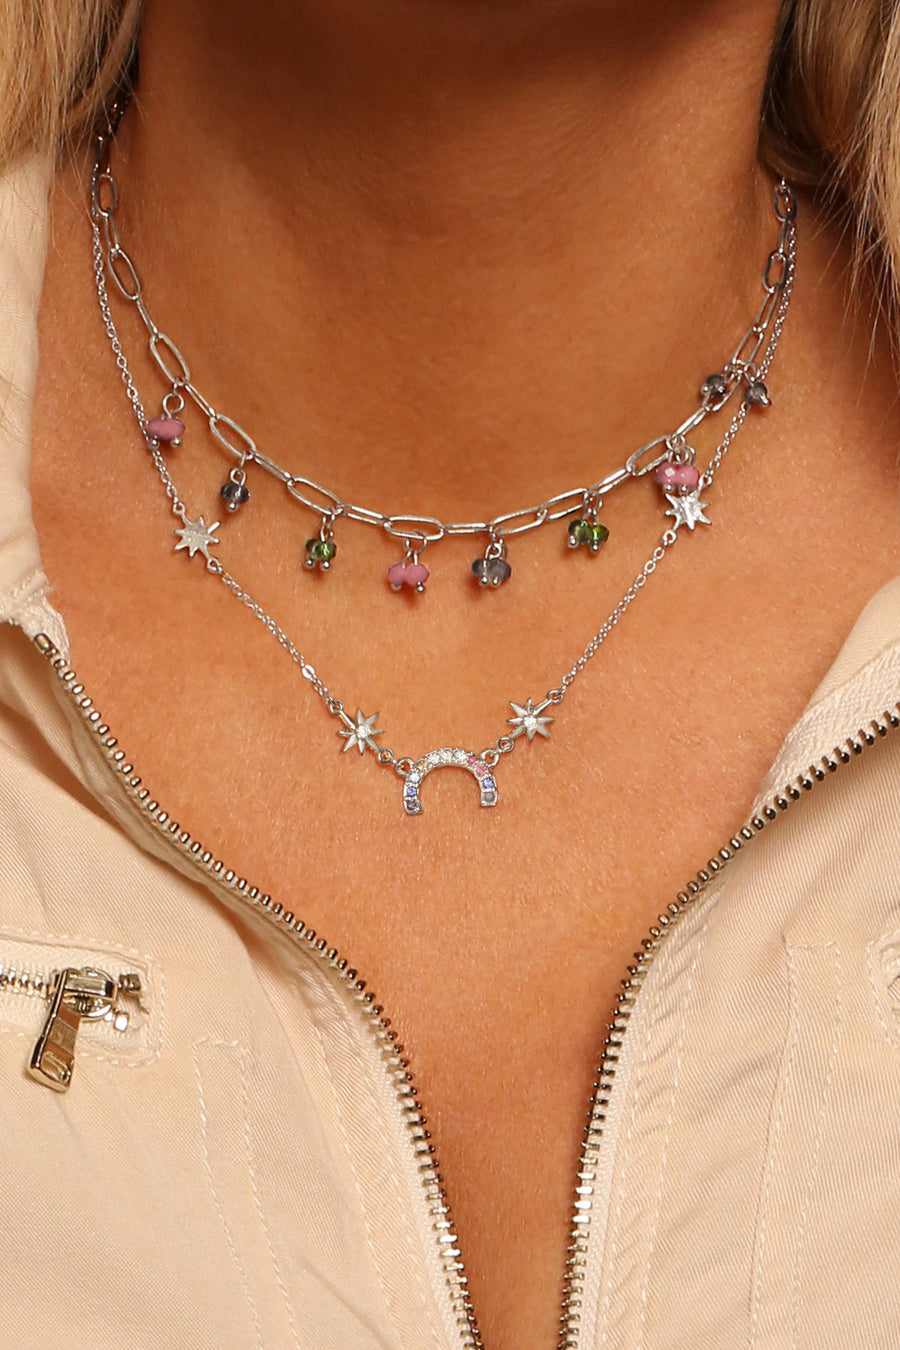 Kate Thornton 'Hope' Beaded Rainbow Crystal layered necklace set in silver